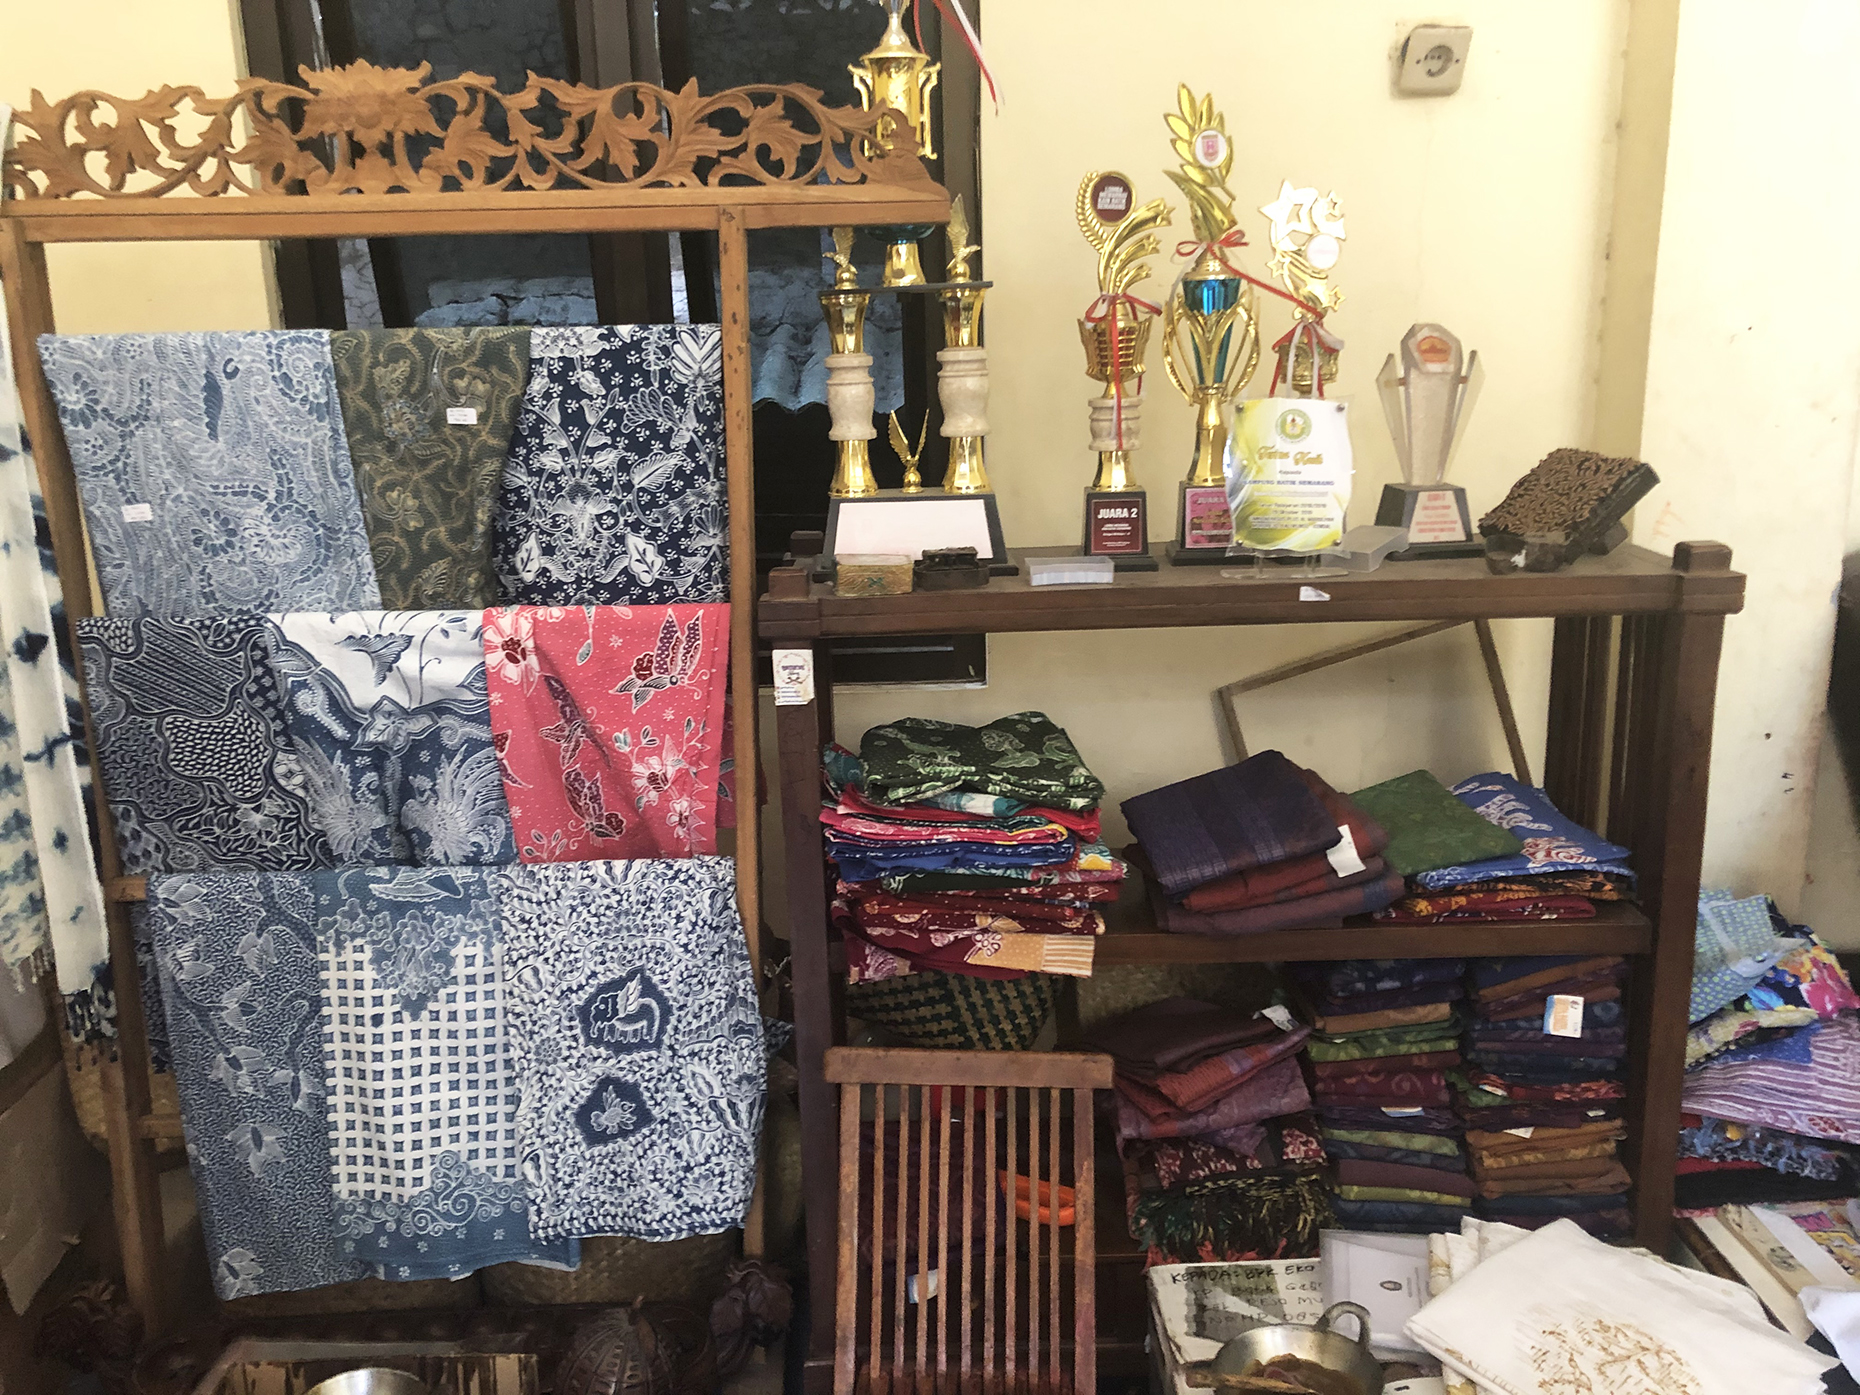 Examples of batik (Image: Daisy Meager)